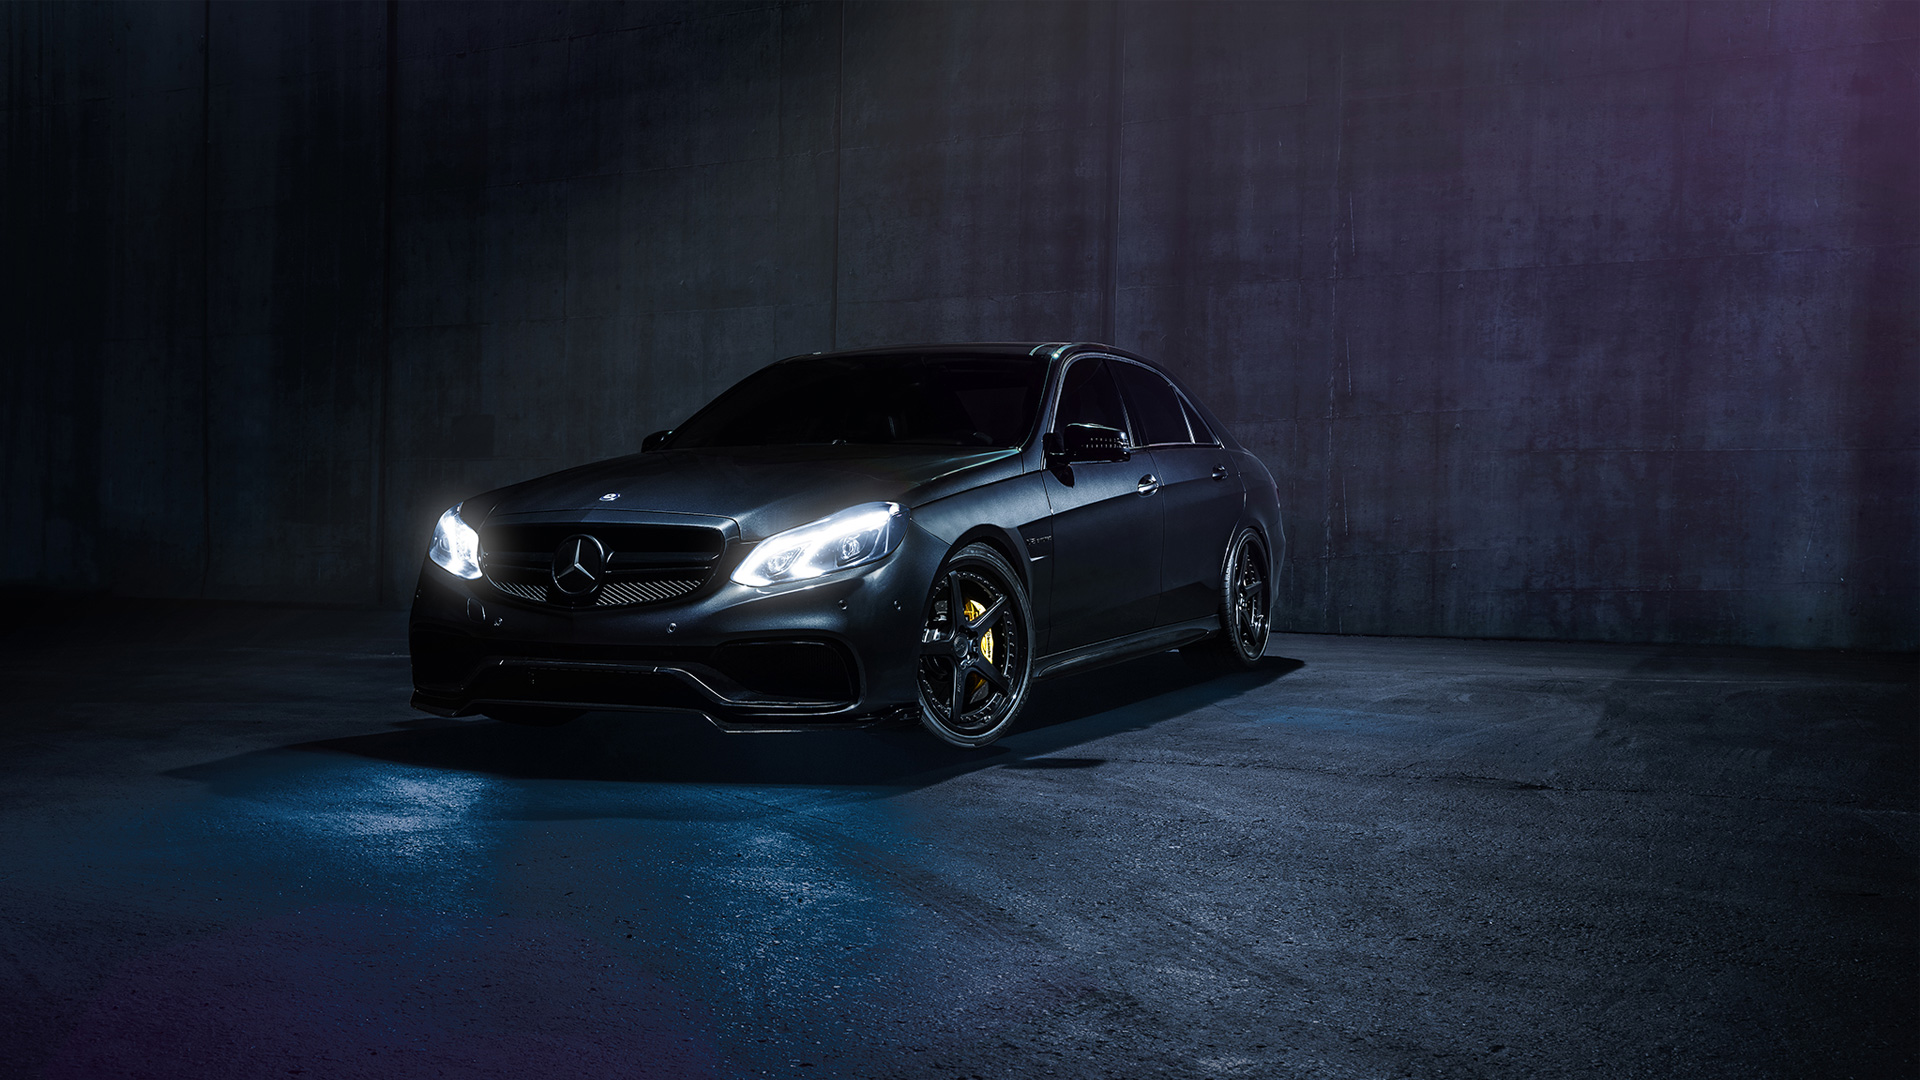 2016 Mercedes AMG E63 S SedanRelated Car Wallpapers 1920x1080